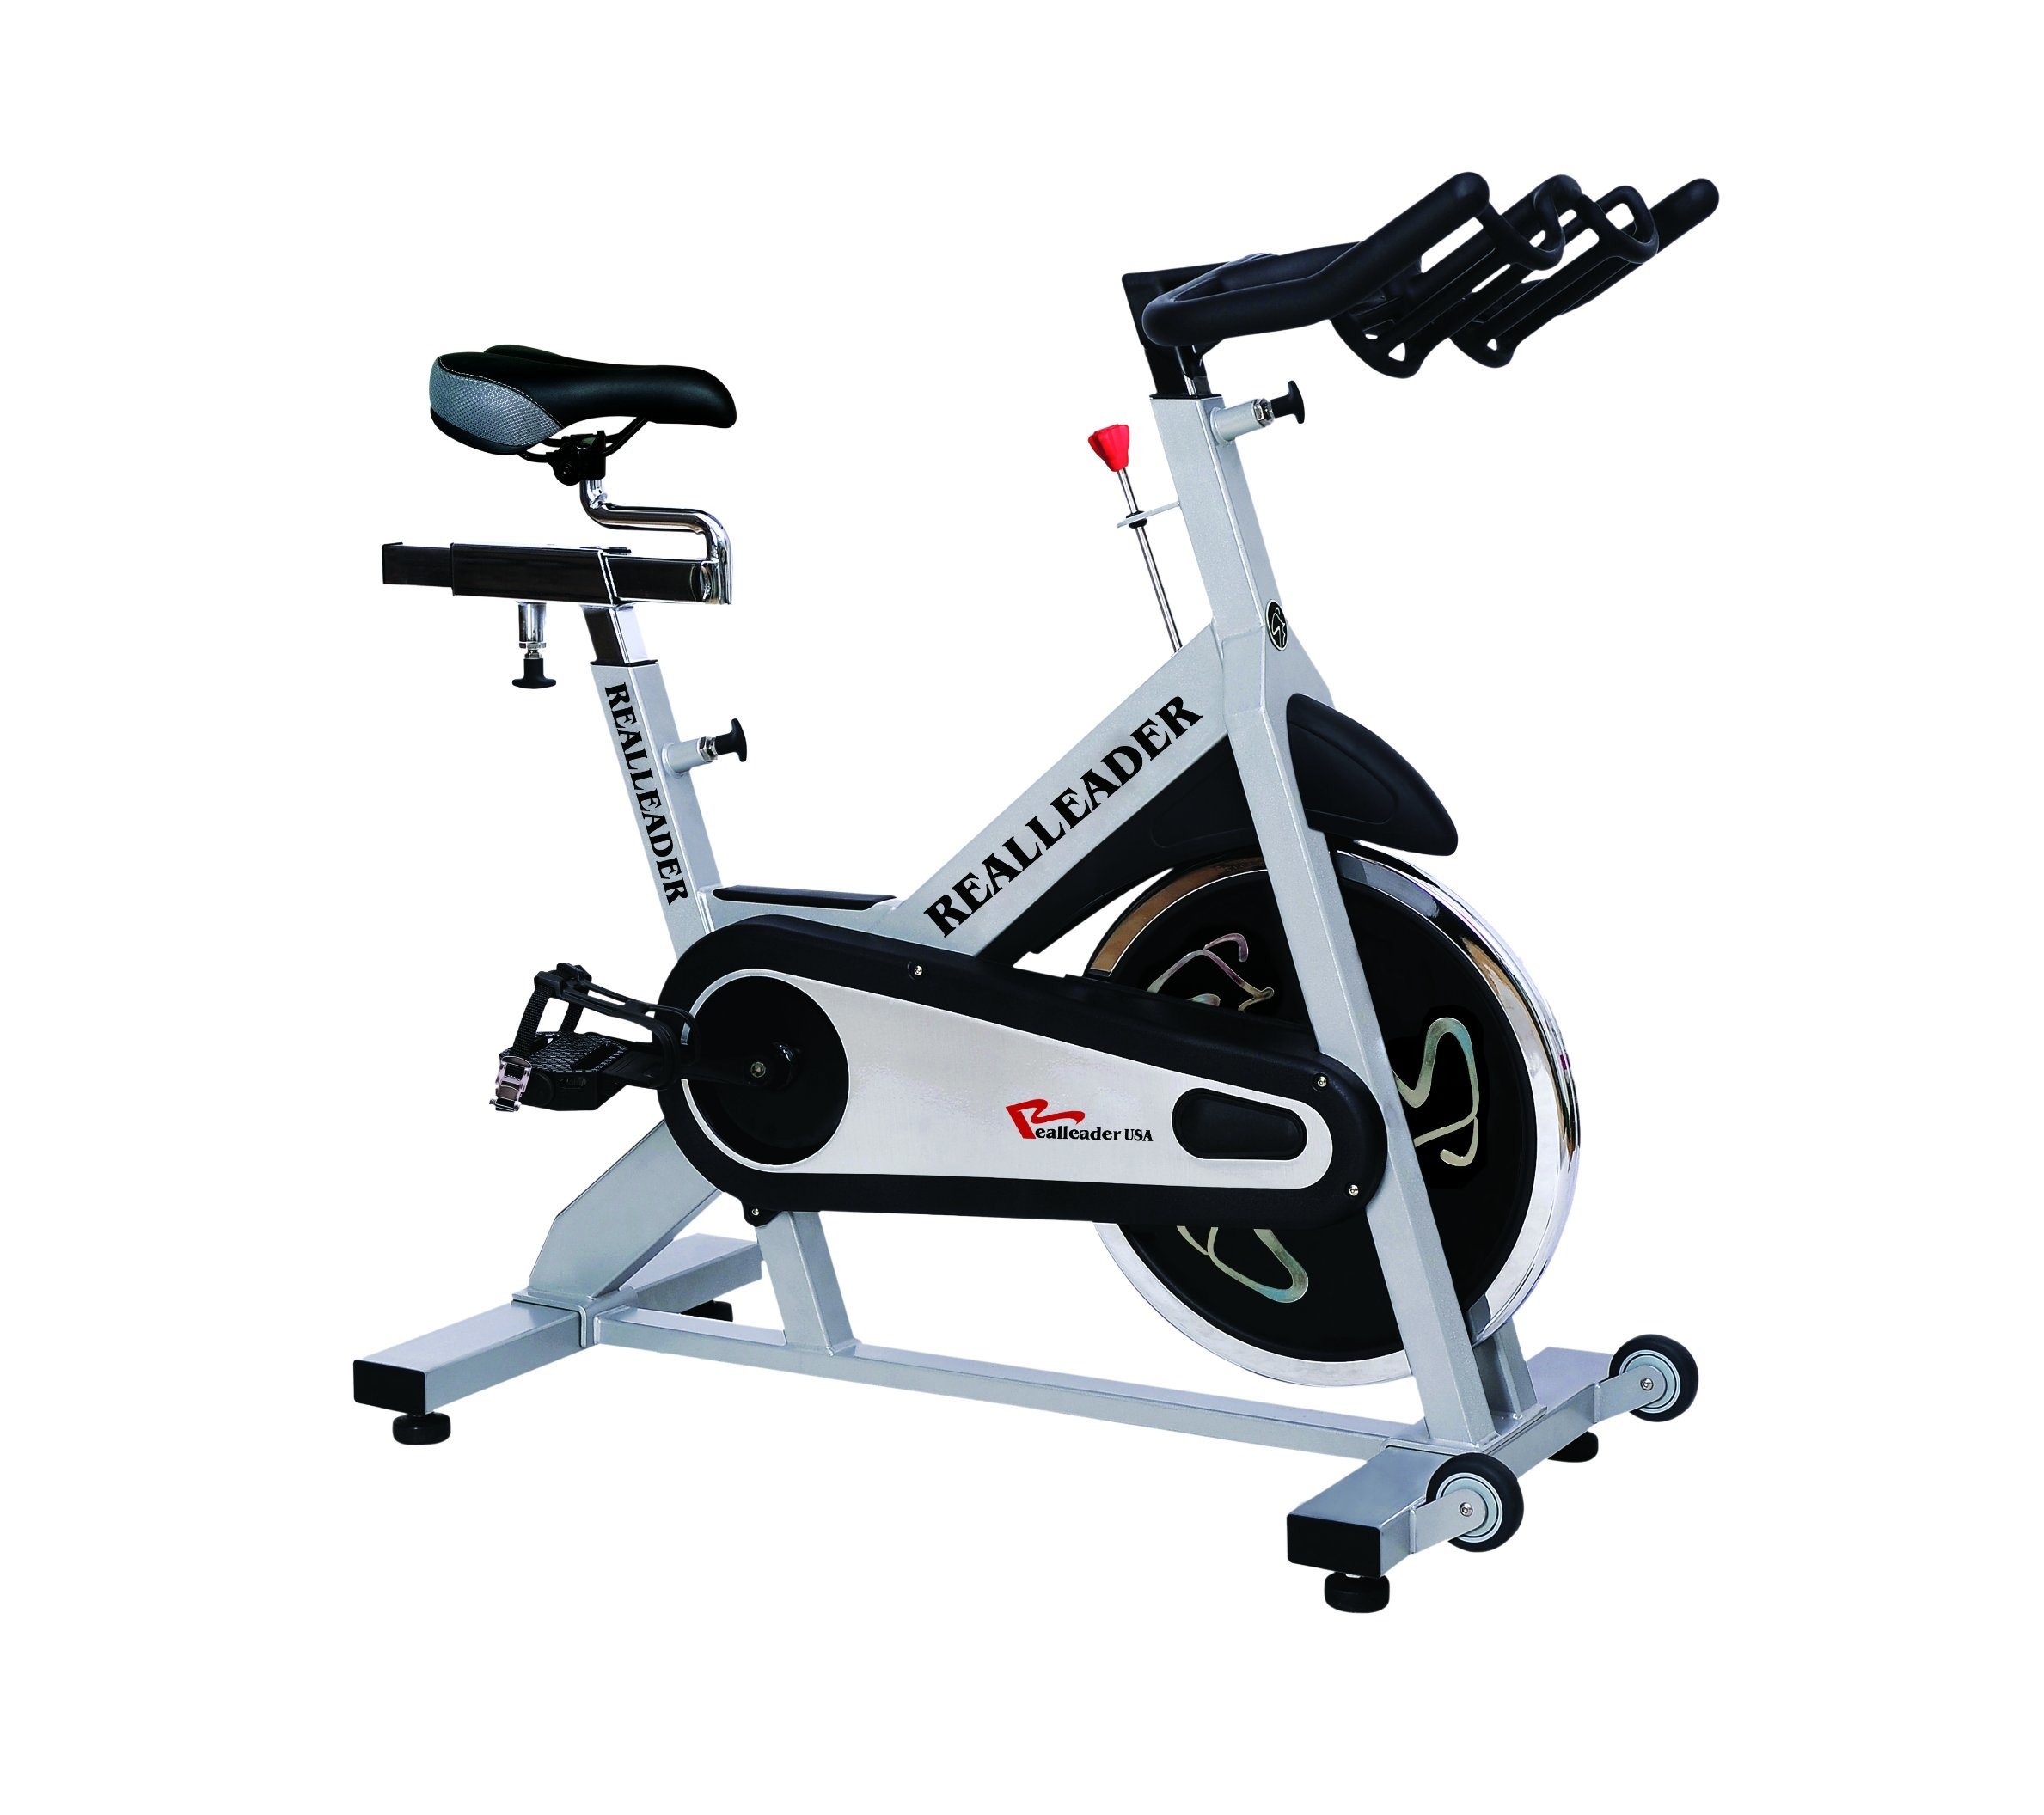 Spinning Bike for/ Fitness Equipmet/Cardio pictures & photos